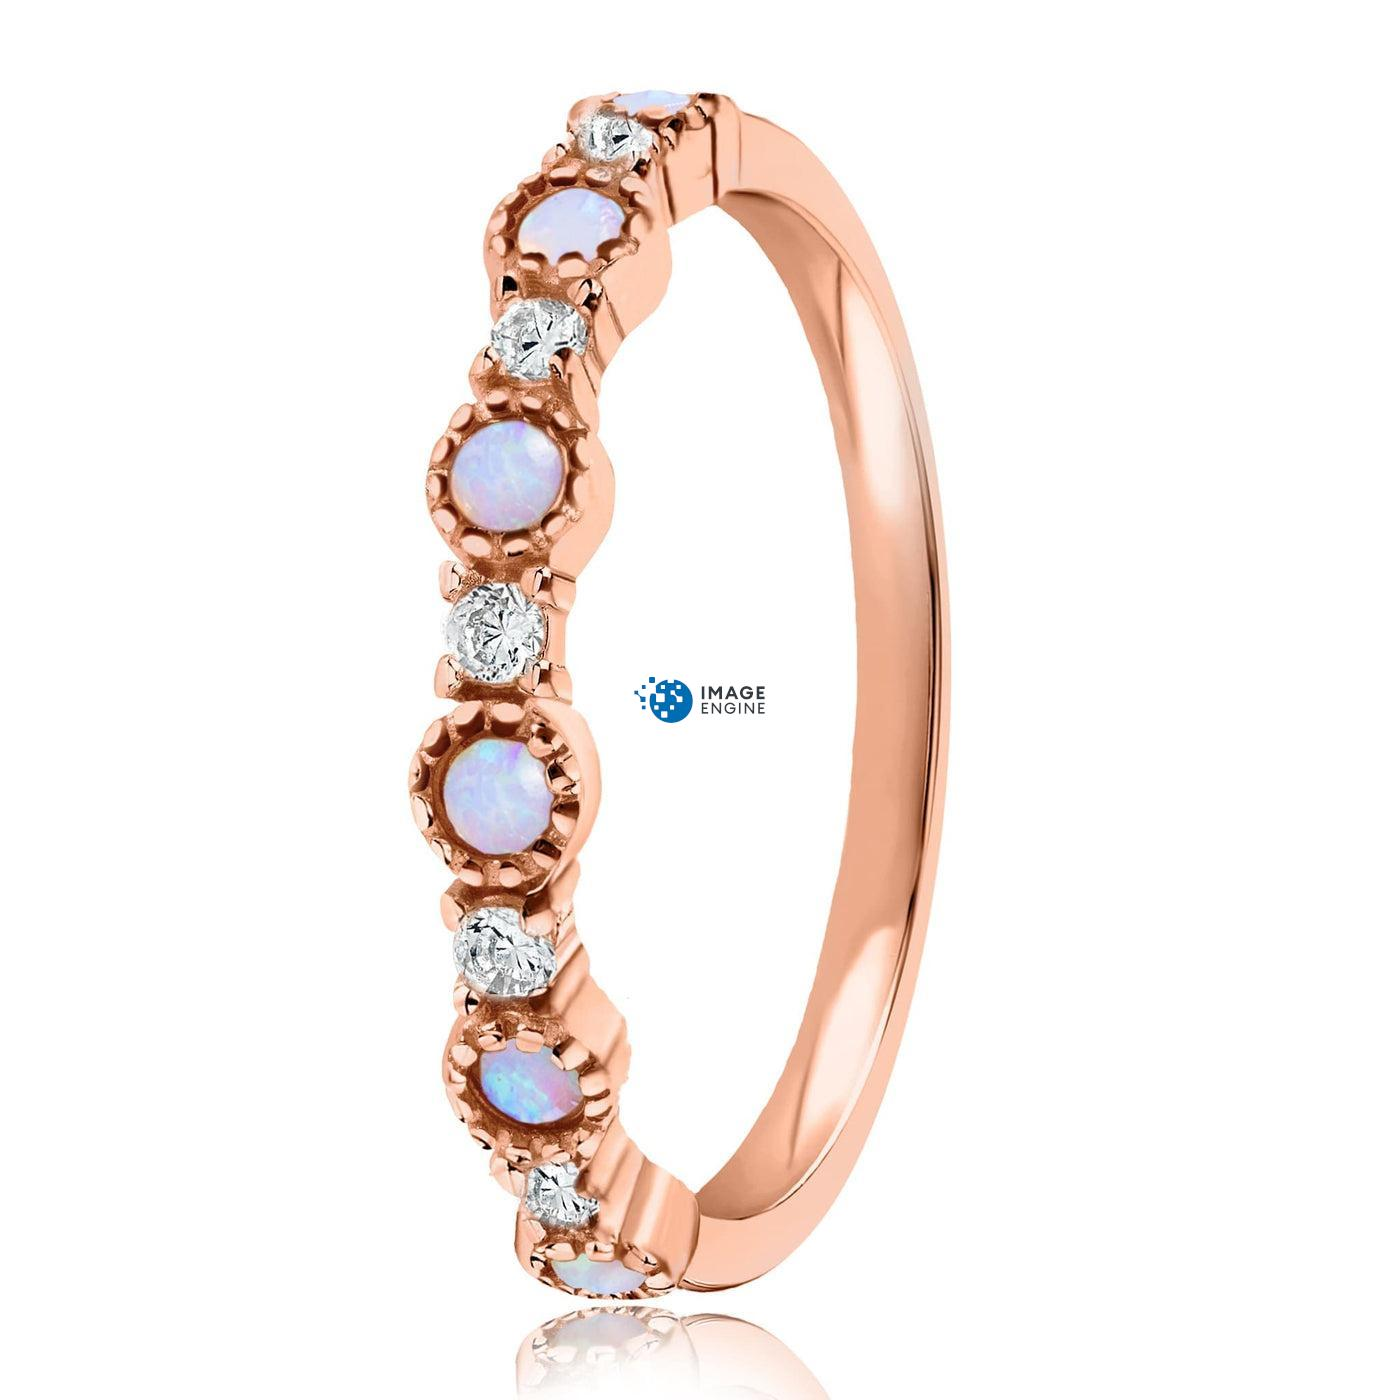 Debra Dots Opal Ring - Side View - 18K Rose Gold Vermeil